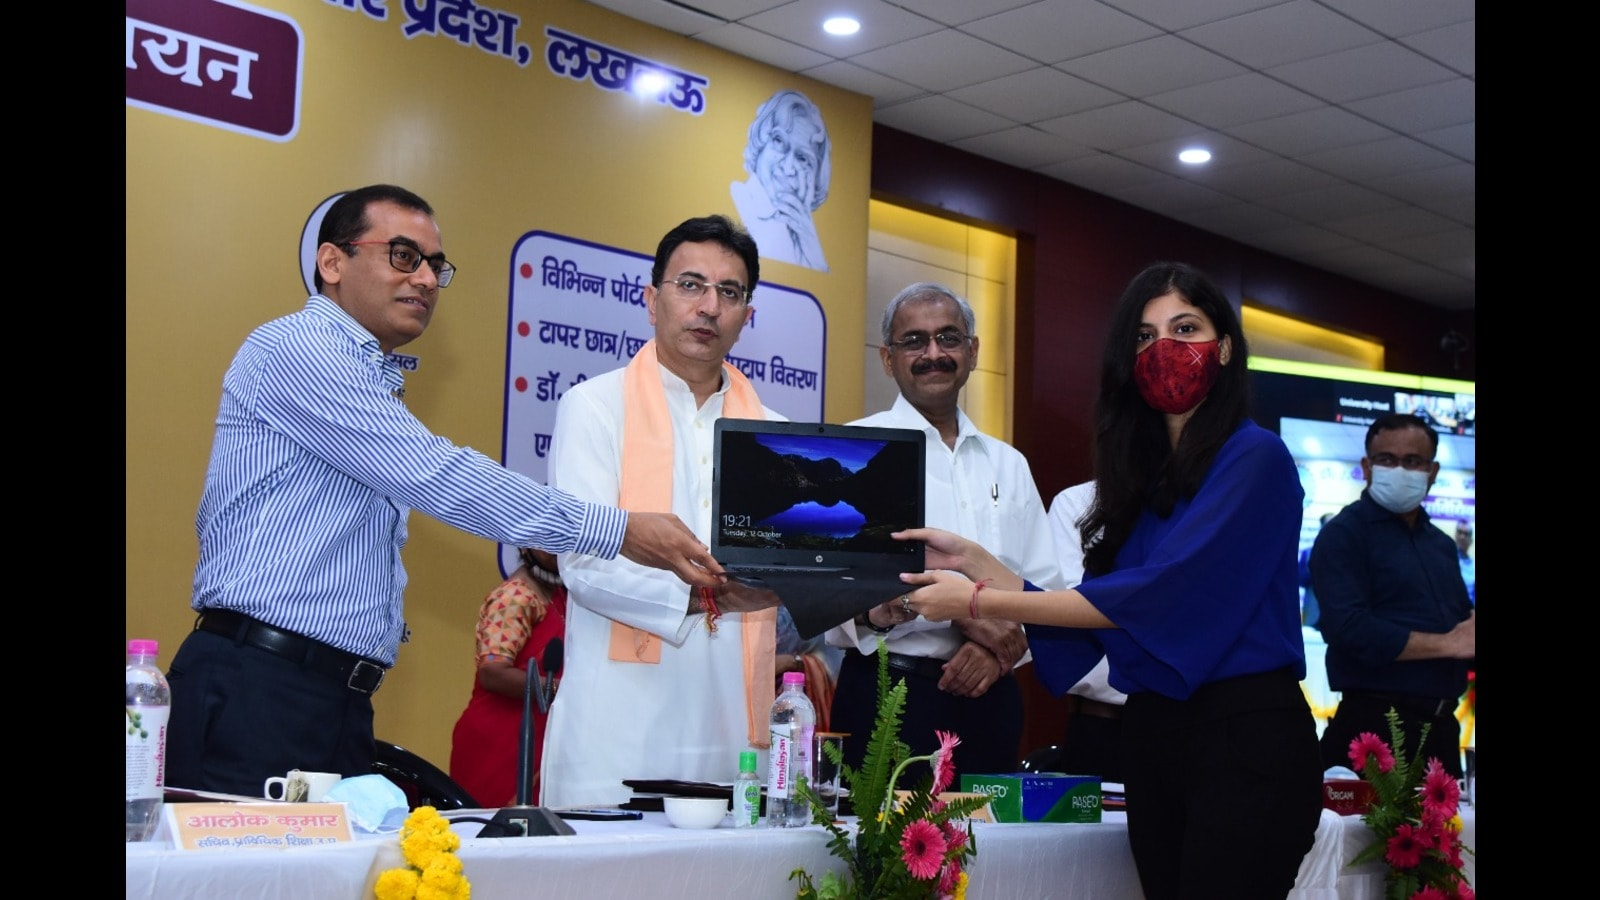 Jitin Prasada urges students to research, innovate to increase employability